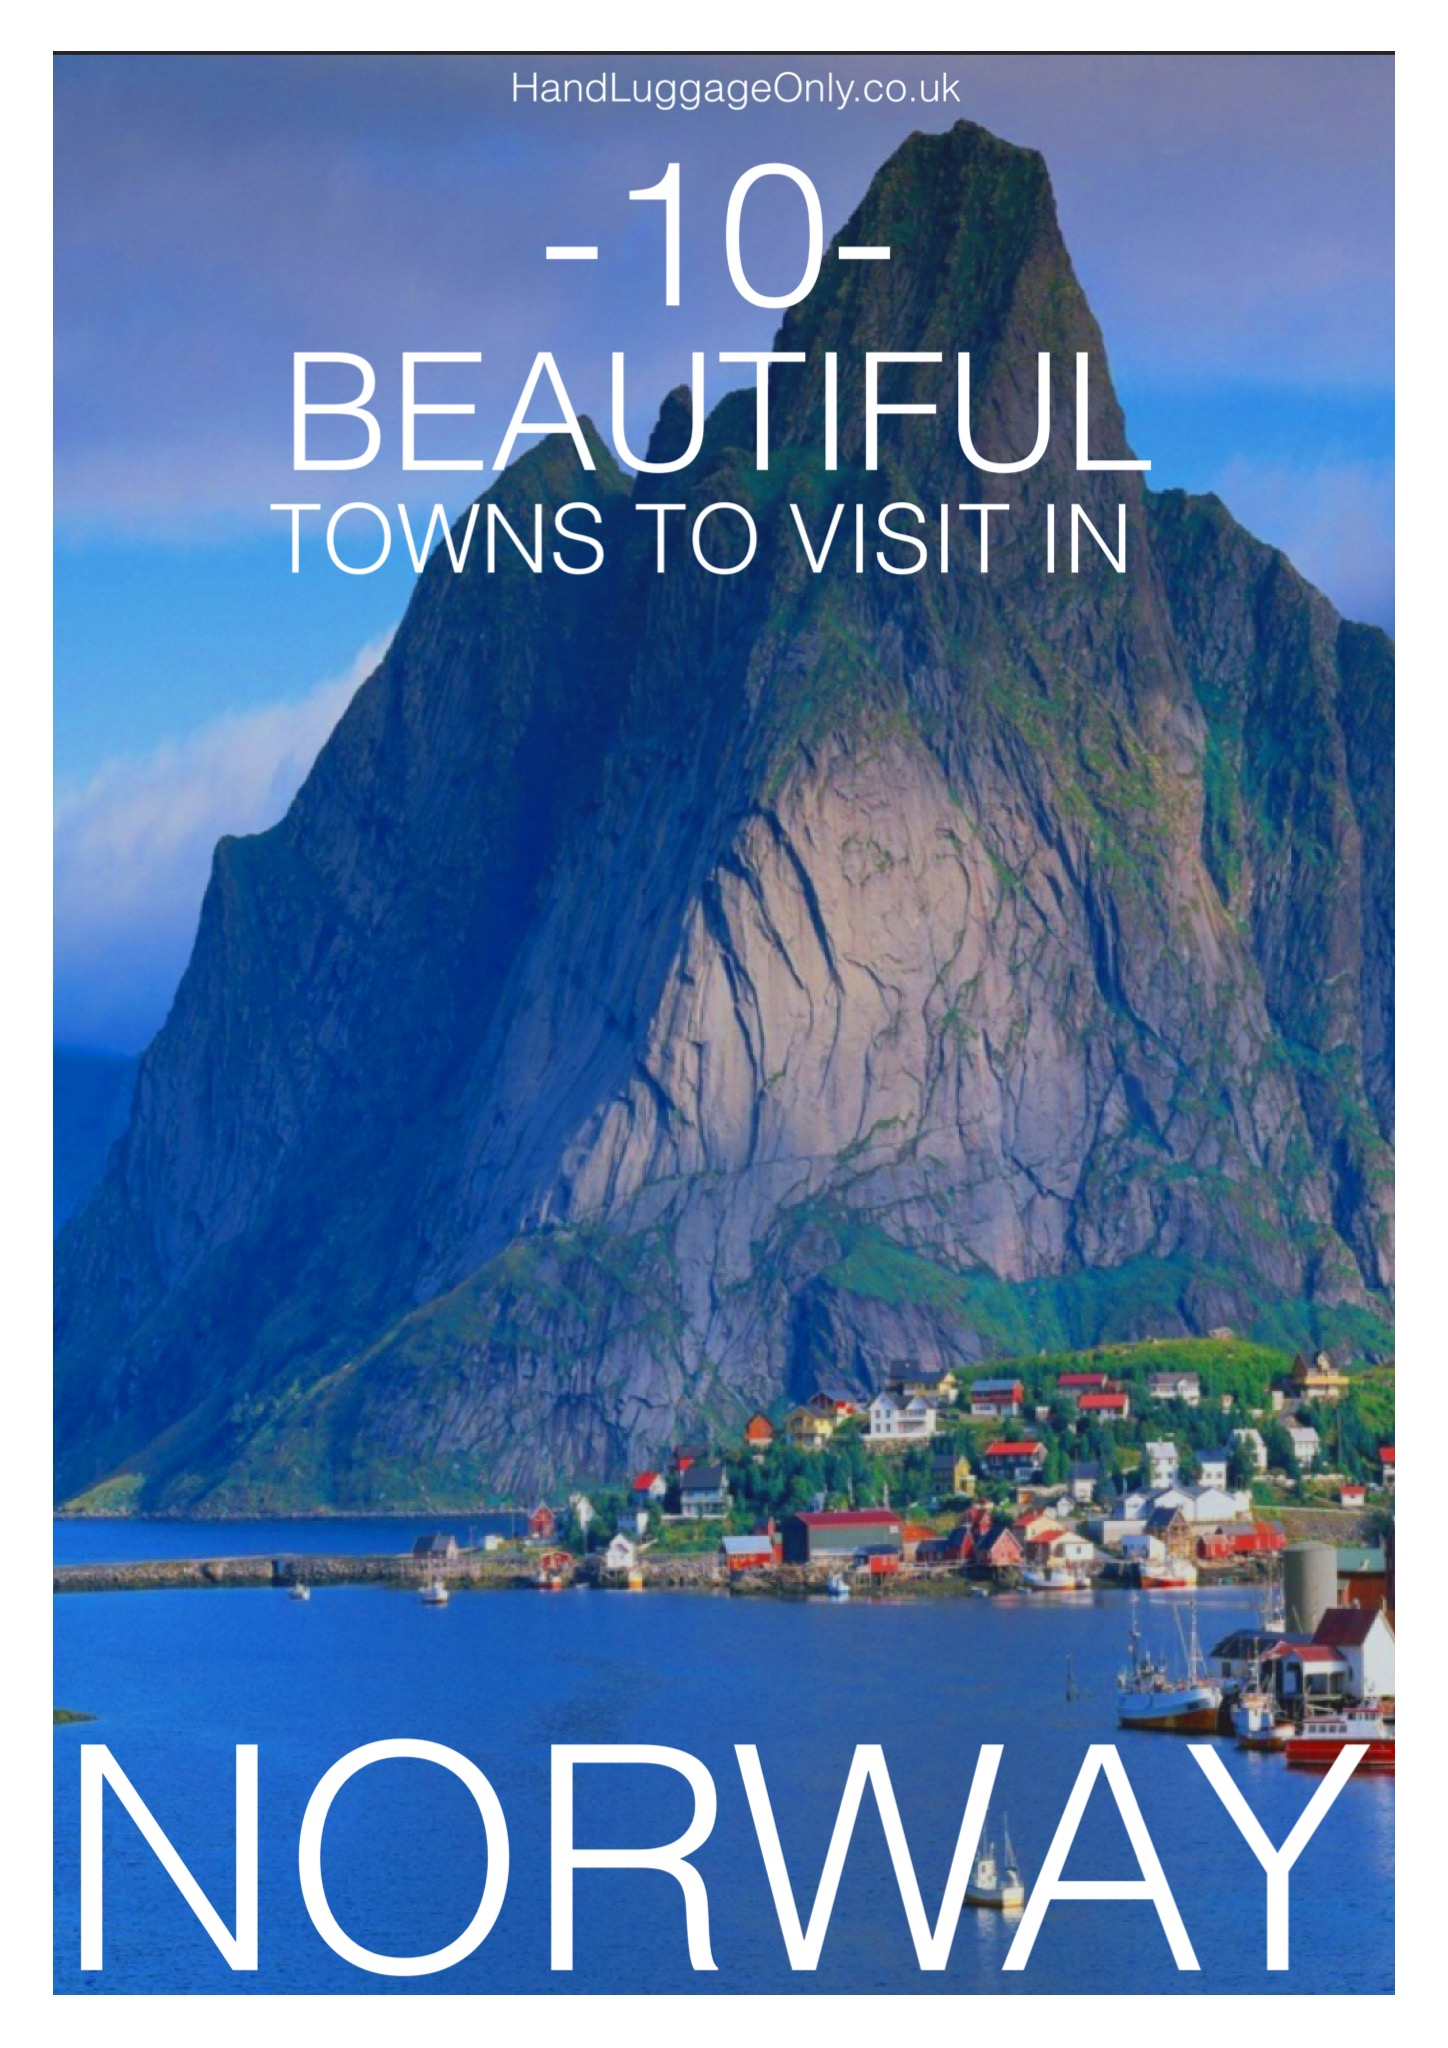 10 Beautiful Towns You Should Visit in Norway (1)